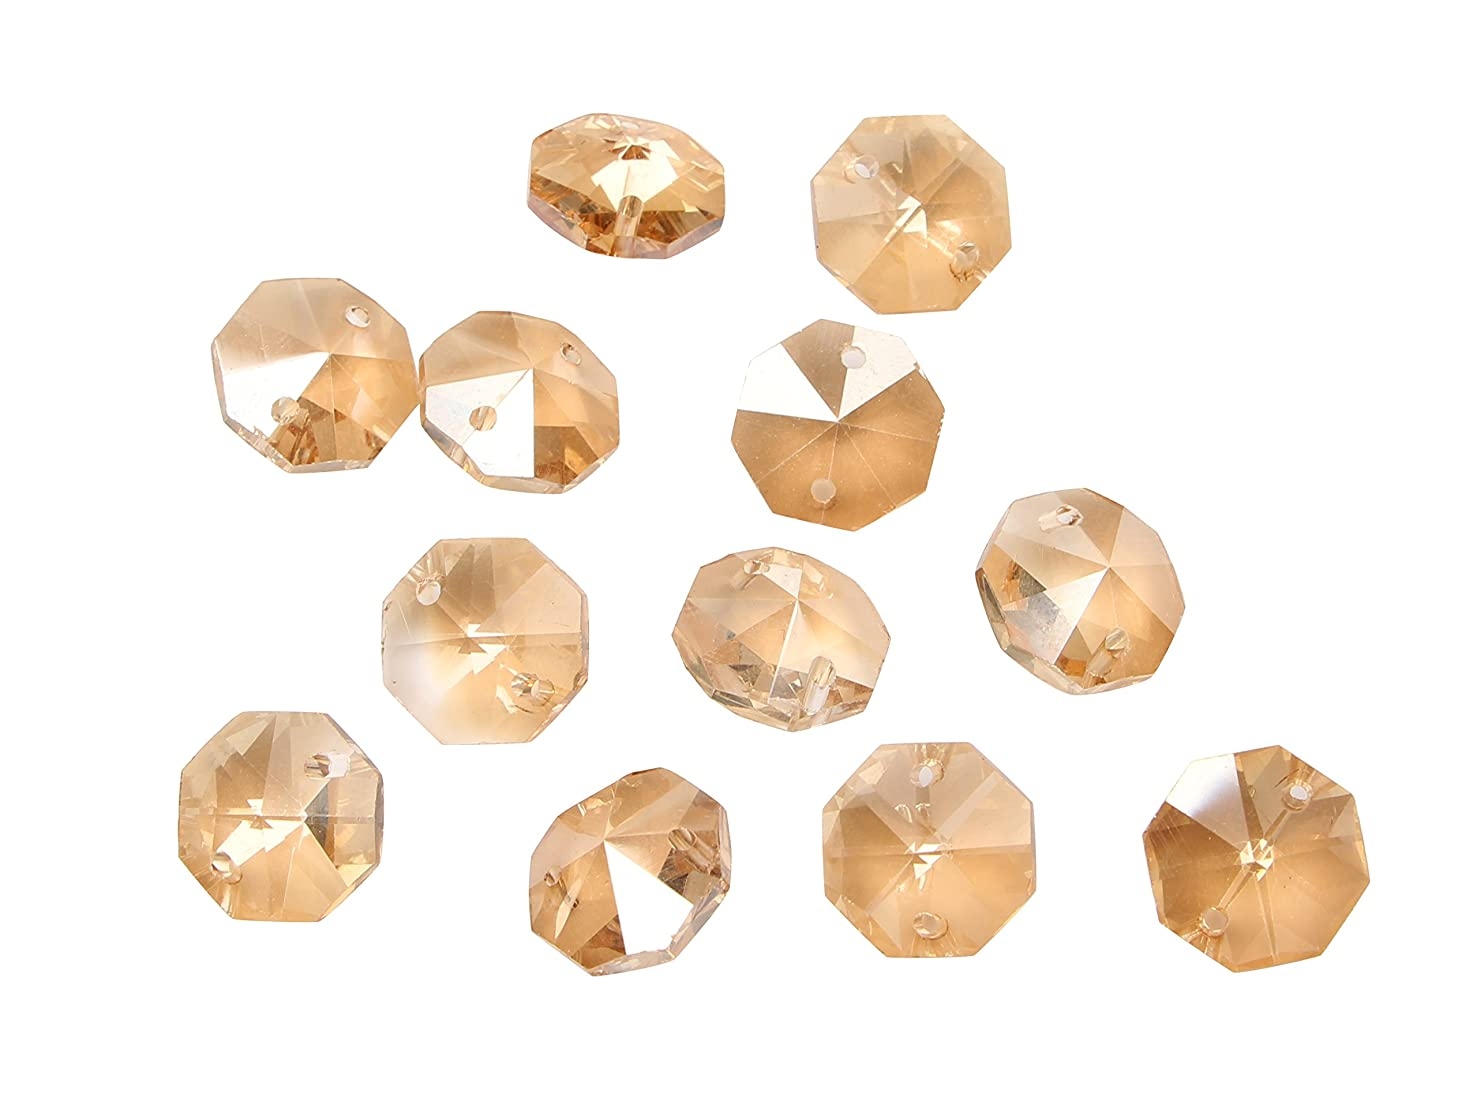 Sun Cling Crystal 14mm Octagon Beads, Pack of 100 (Champagne Gold AB)